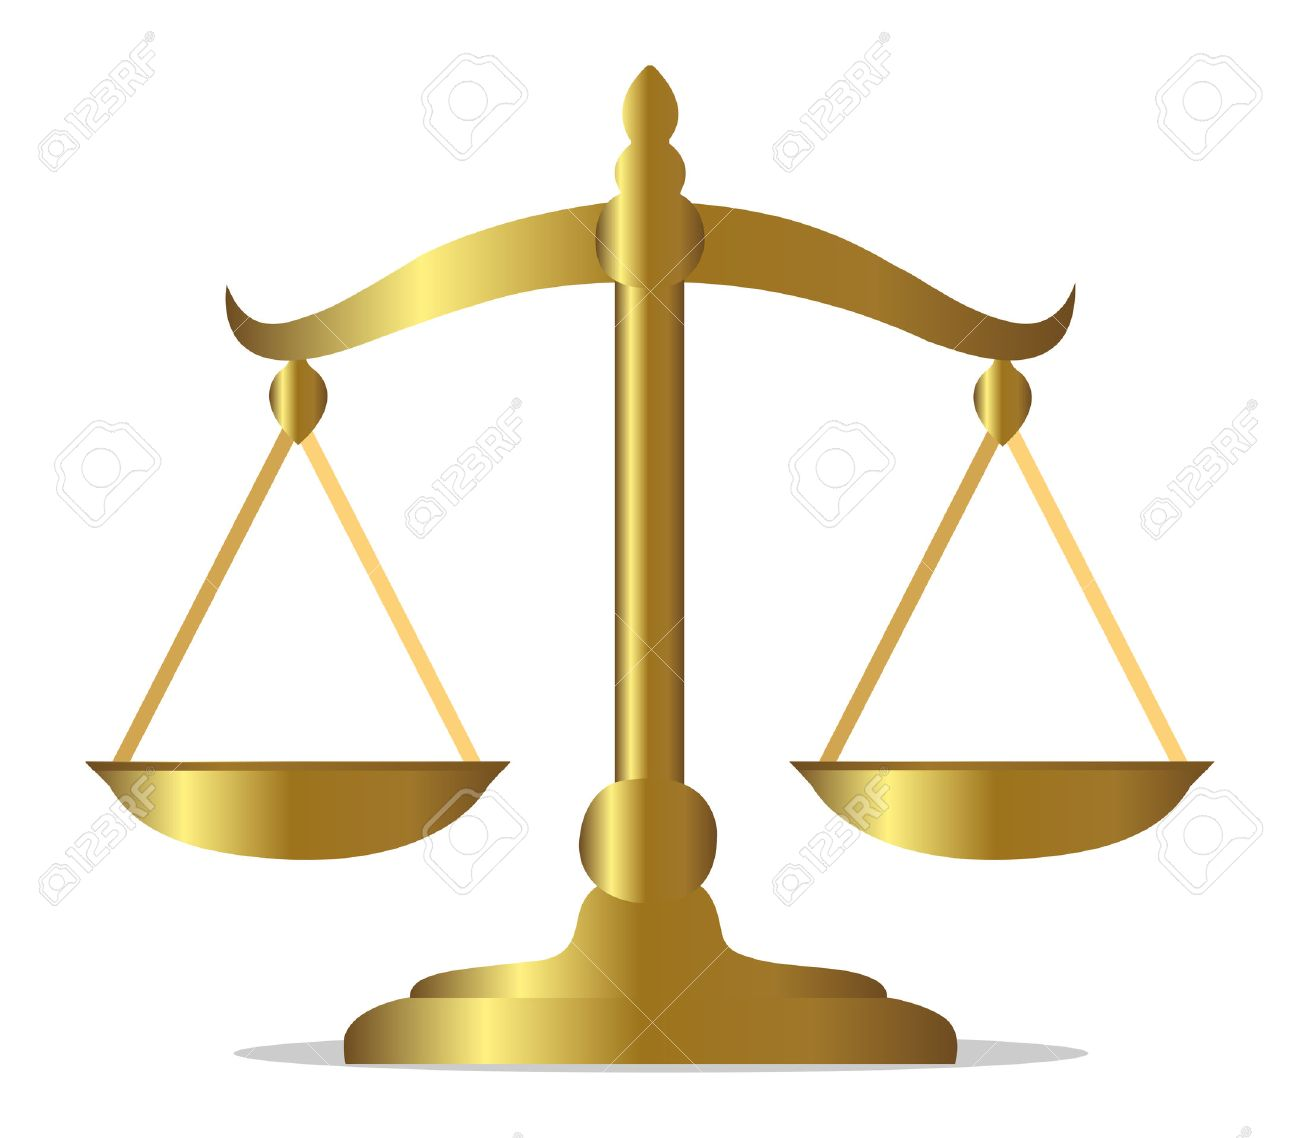 illustration balance scale royalty free cliparts vectors and stock rh 123rf com legal balance scale clipart